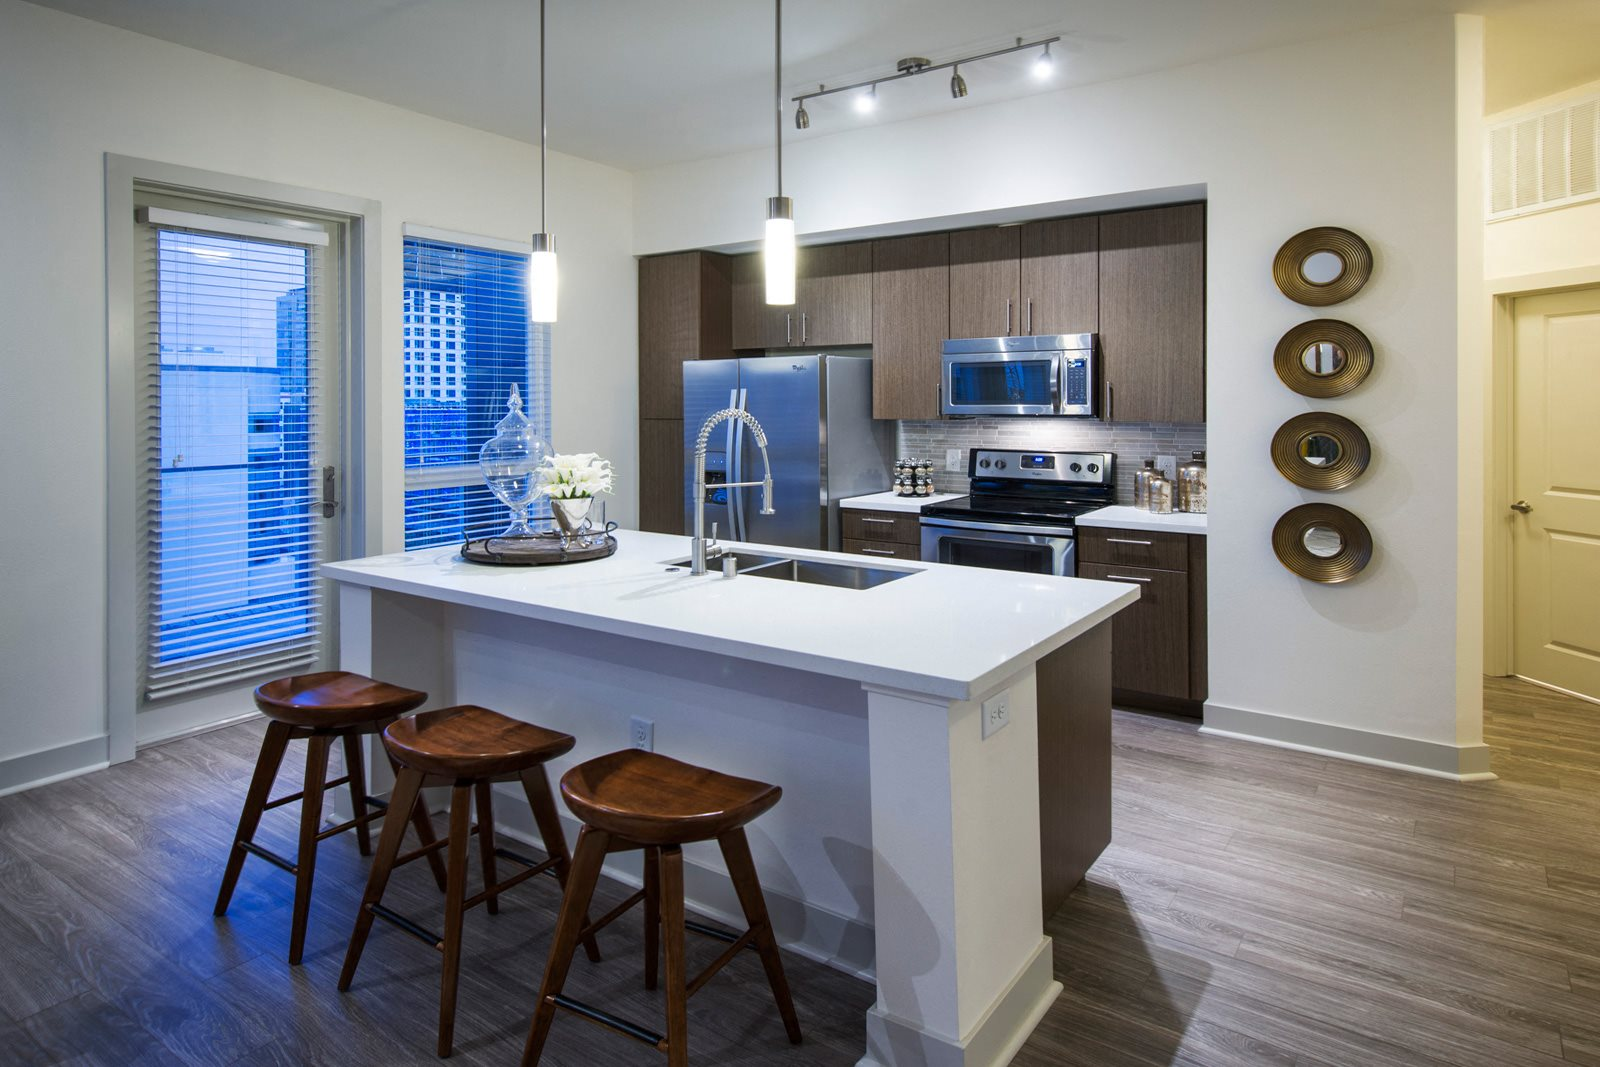 Kitchens with Custom Cabinetry and Kitchen Islands at Olympic by Windsor, 90015, CA